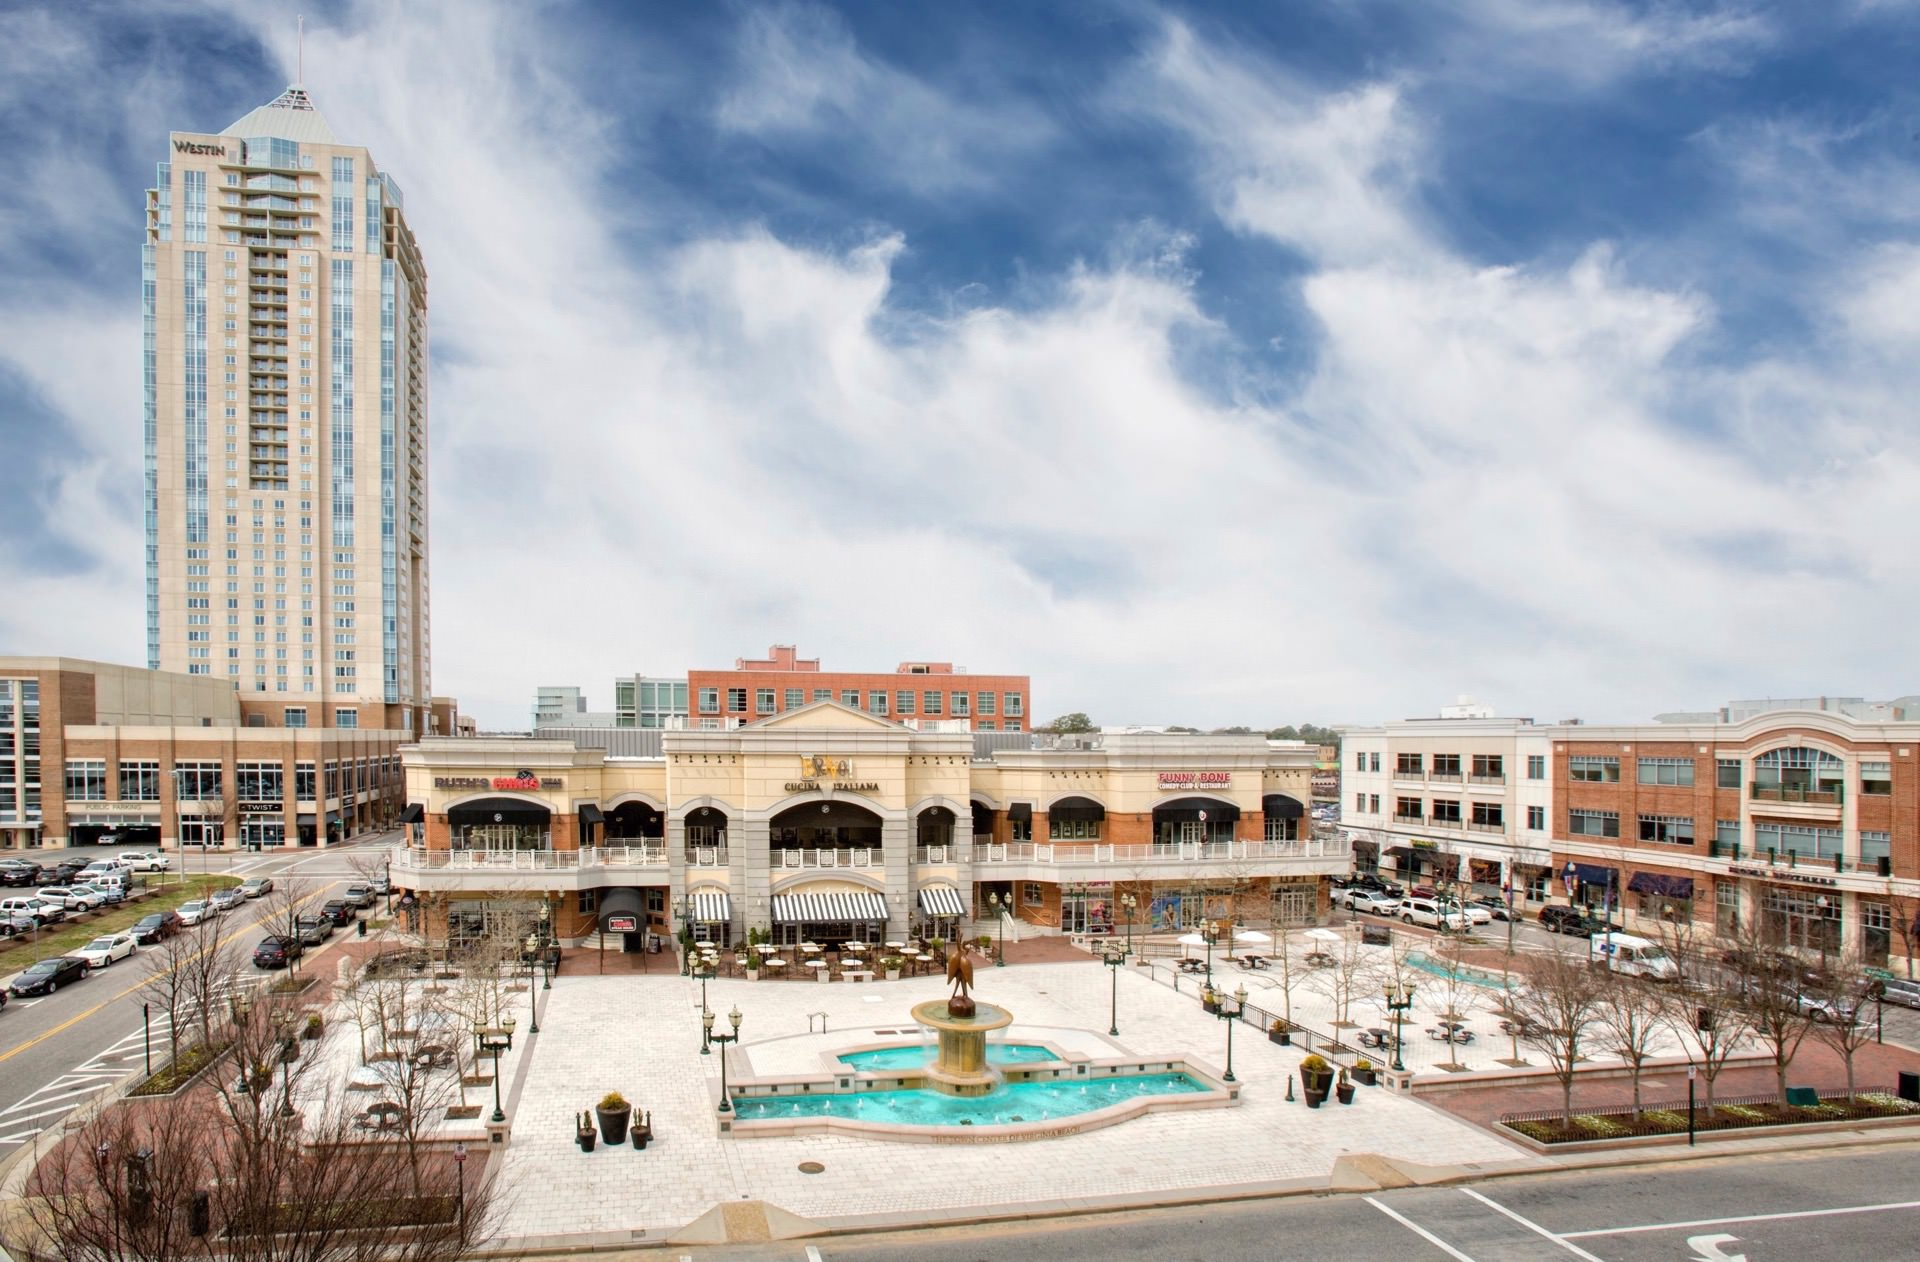 Westin Hotel and Residences at Virginia Beach Town Center